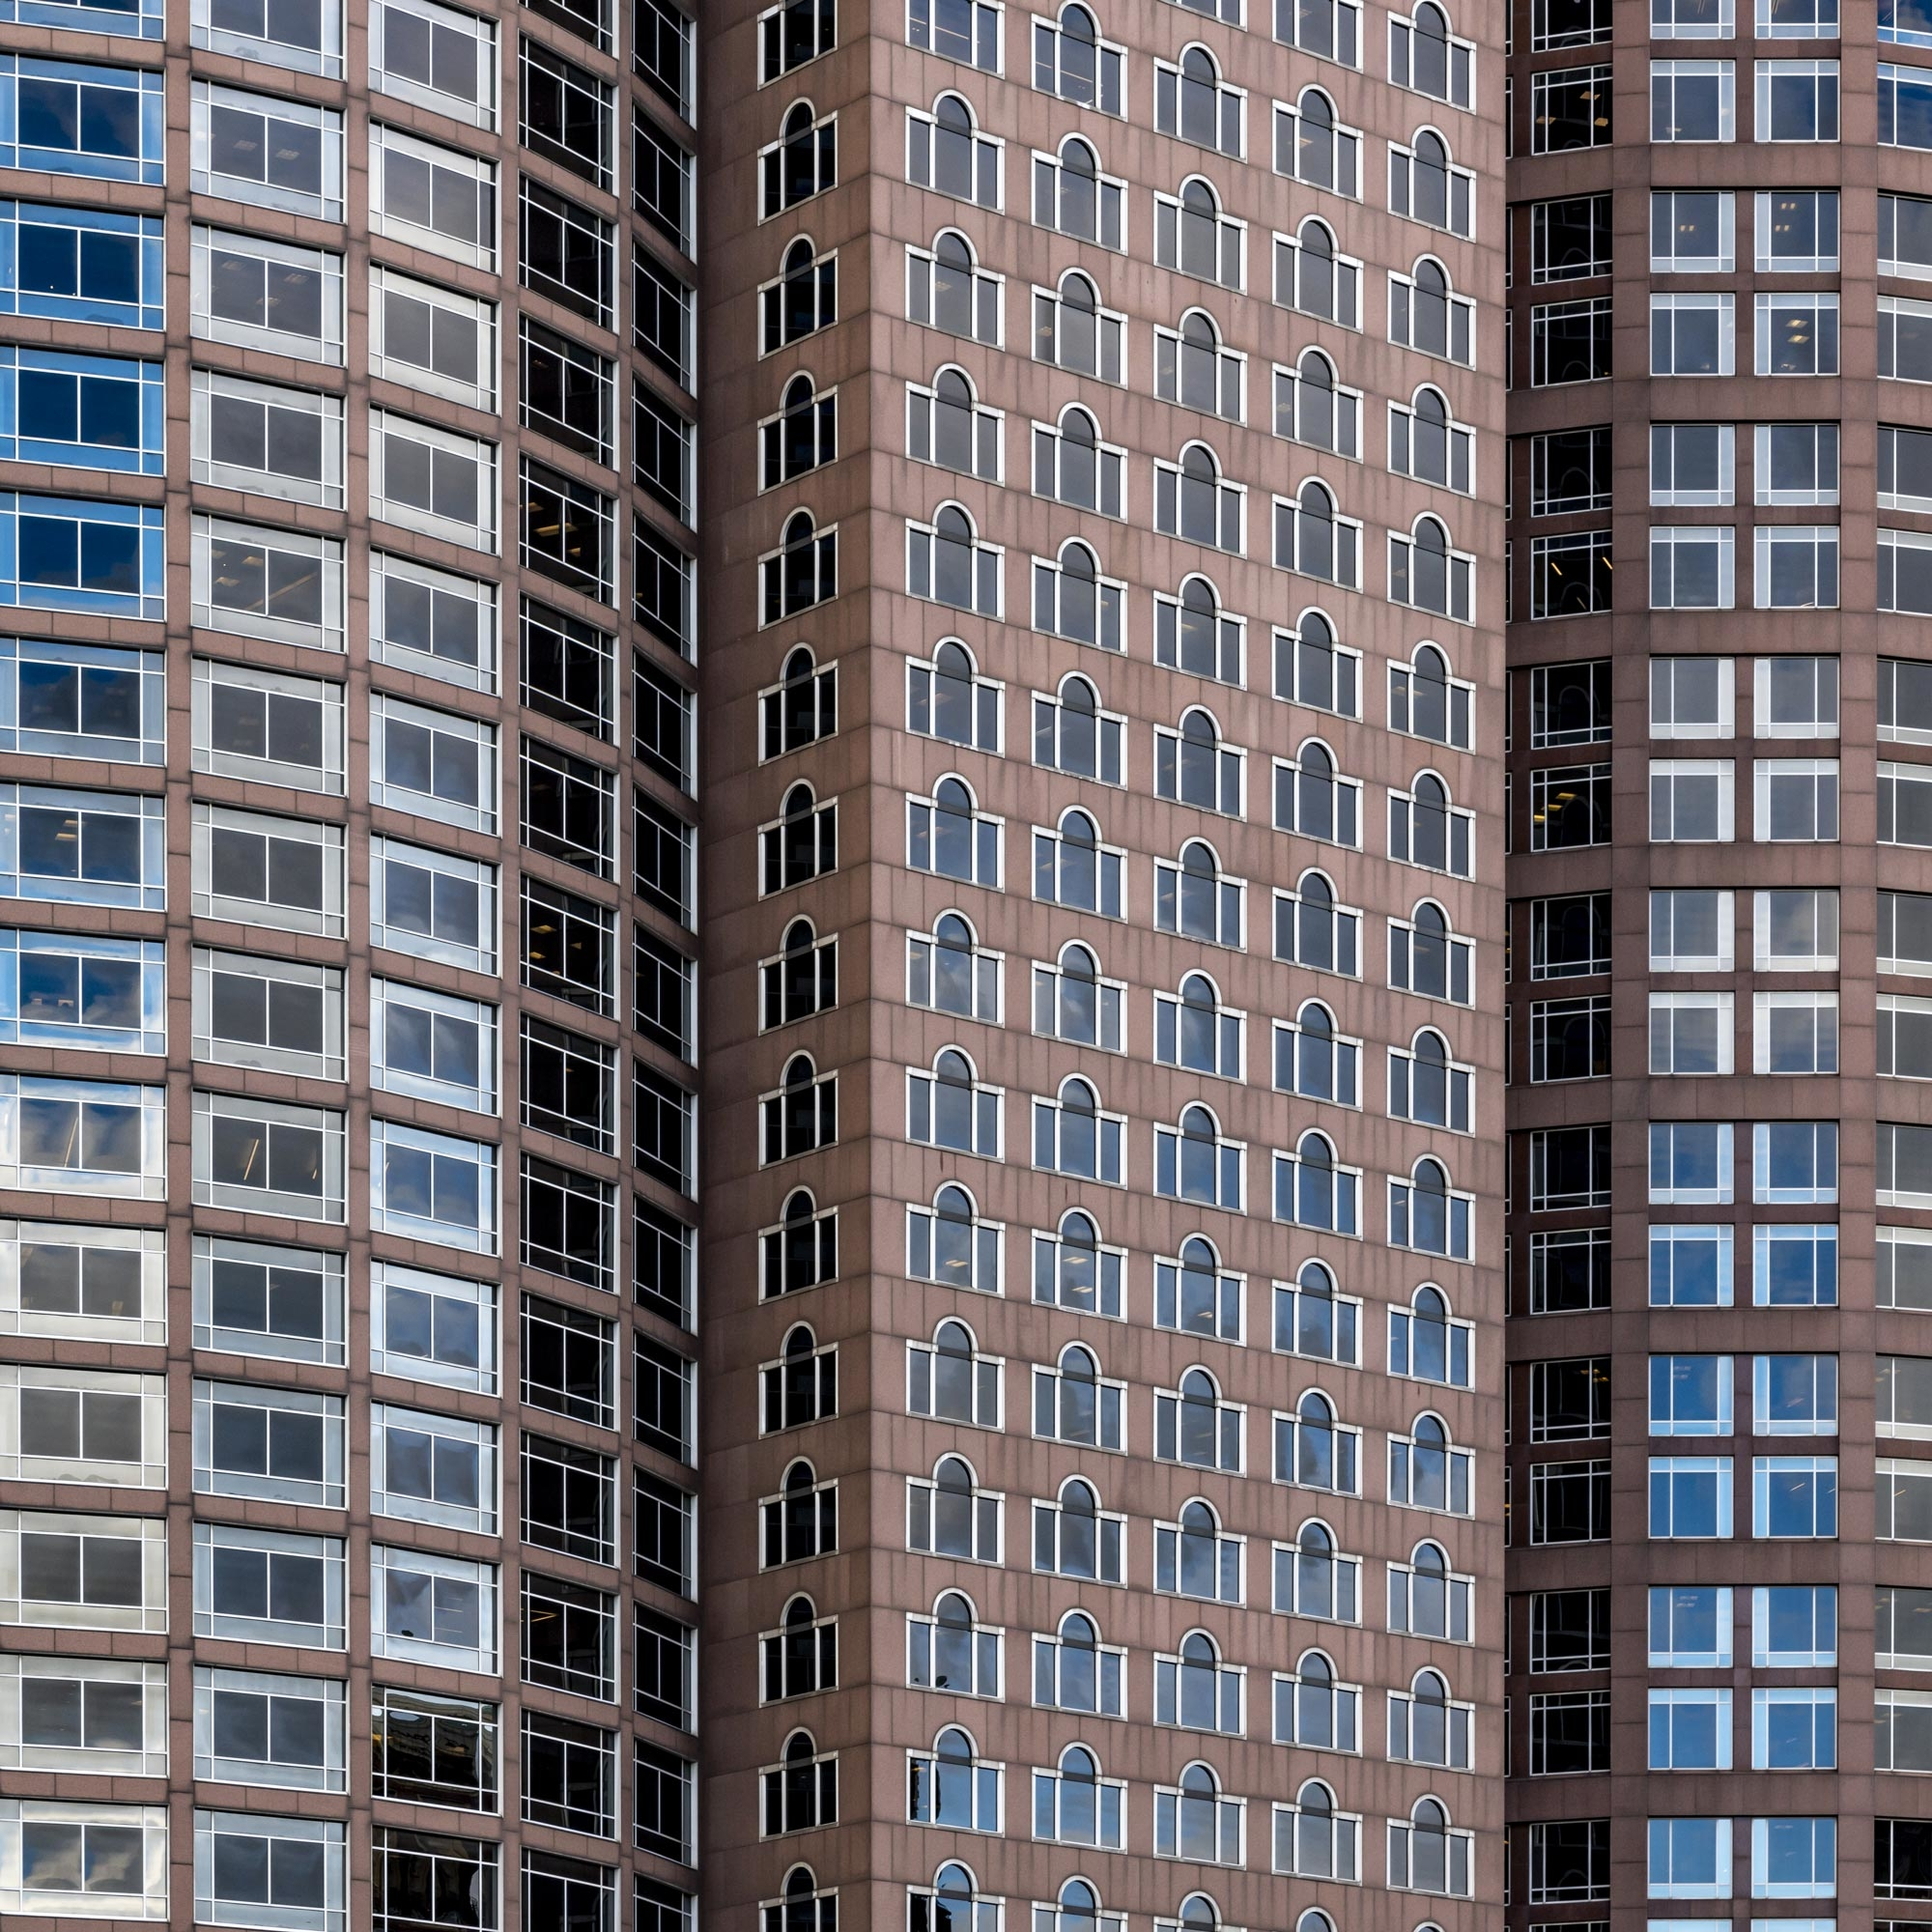 Patterns - Tower Blocks Boston Financial District